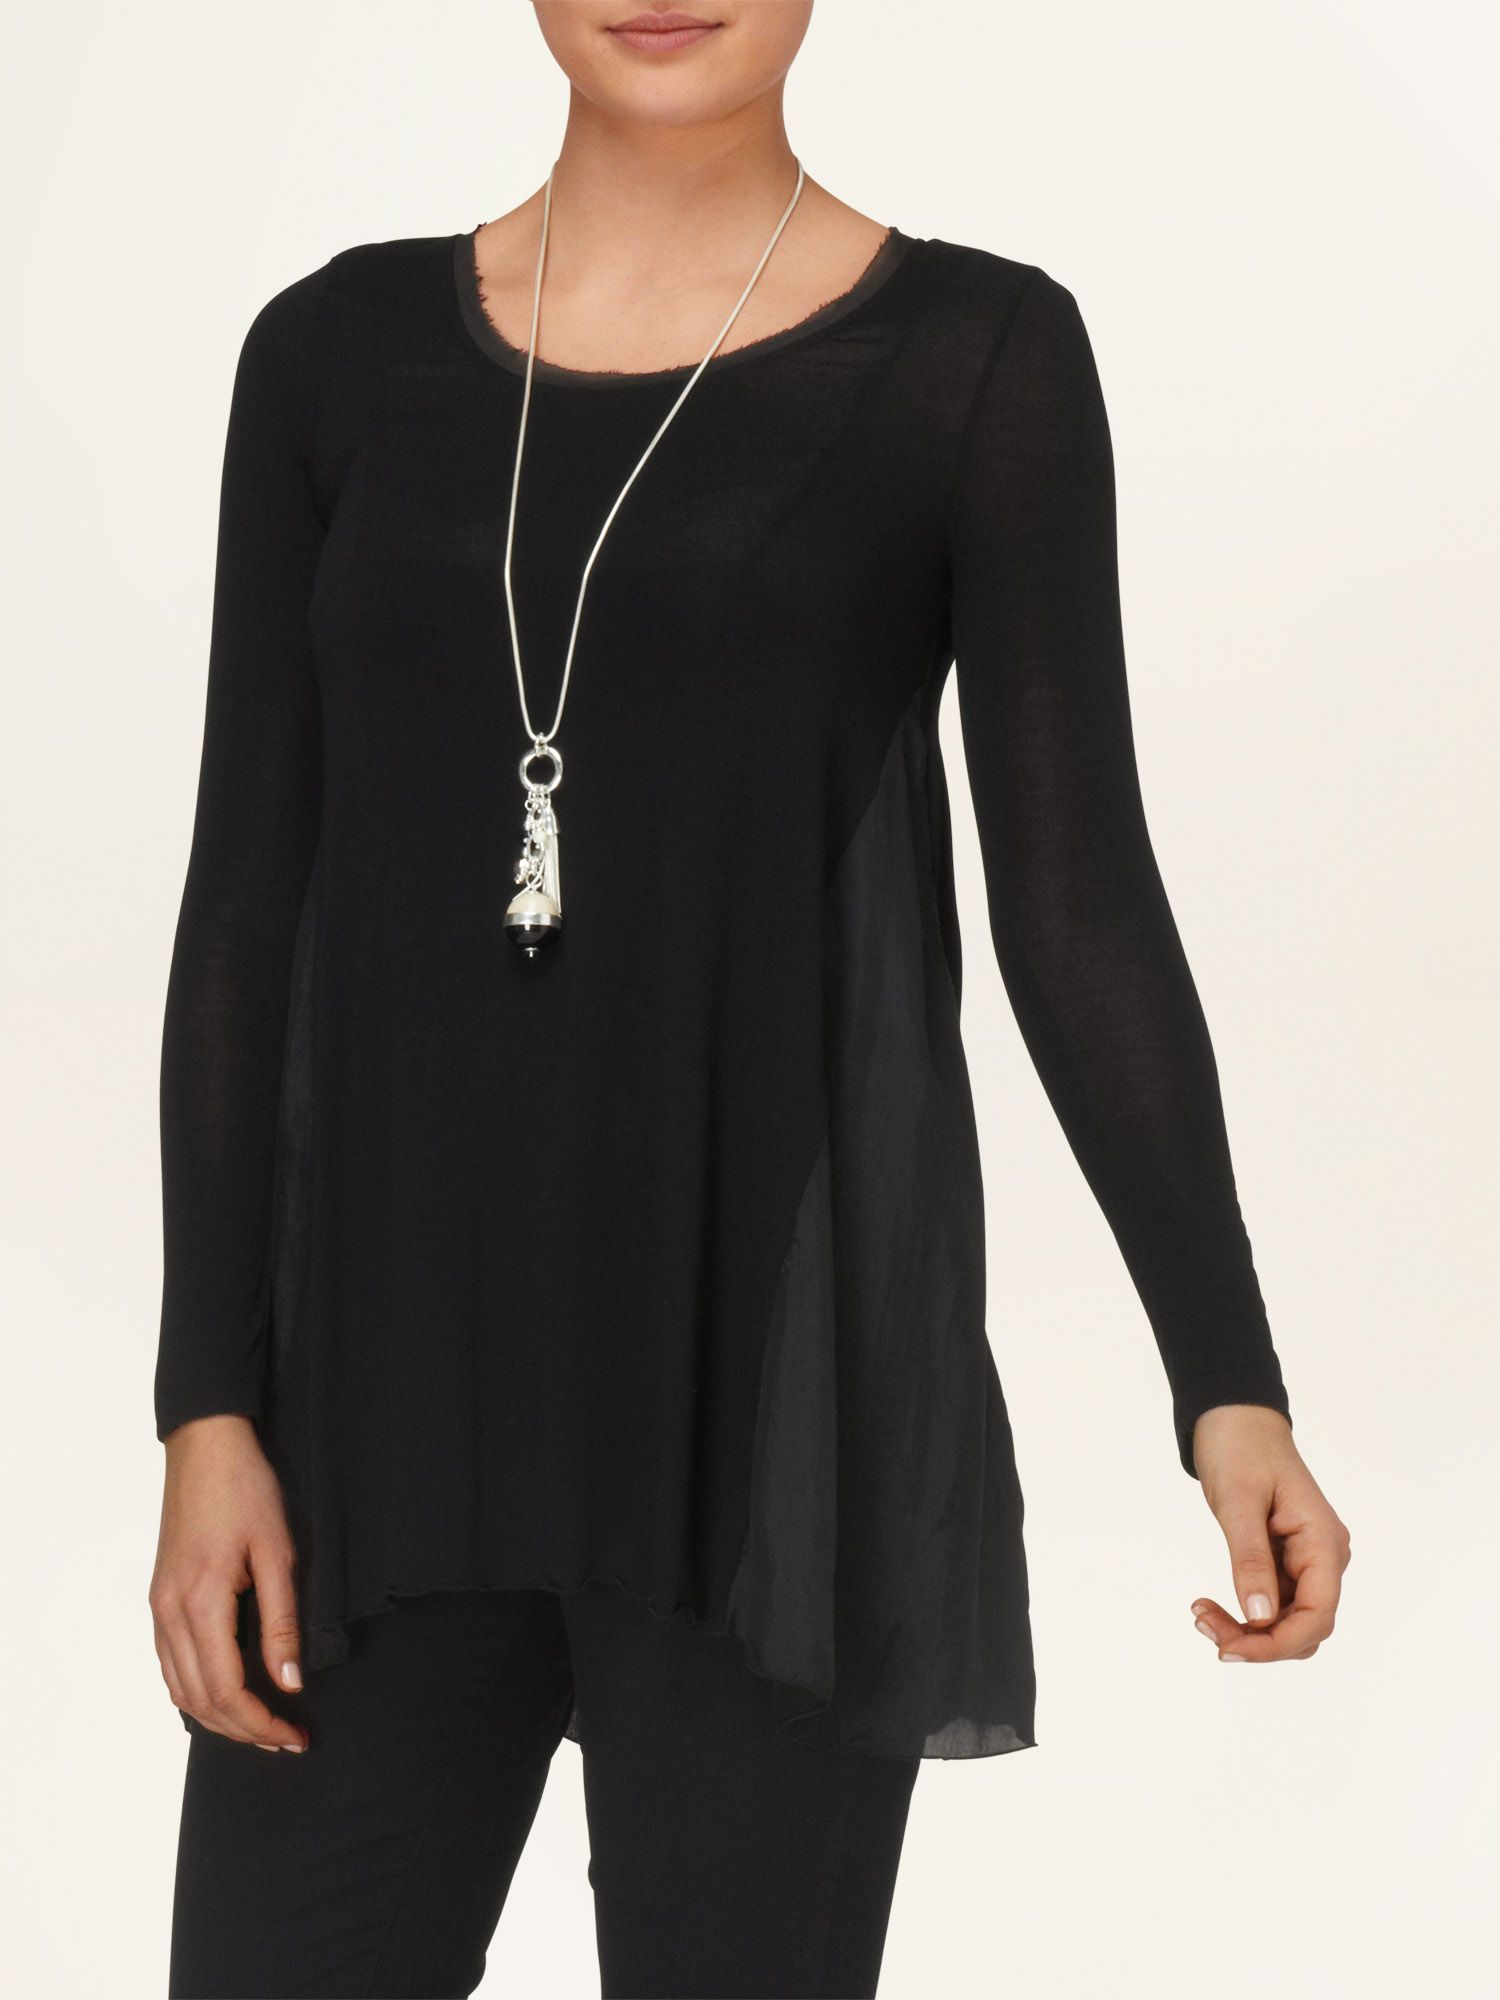 Floaty joplin top